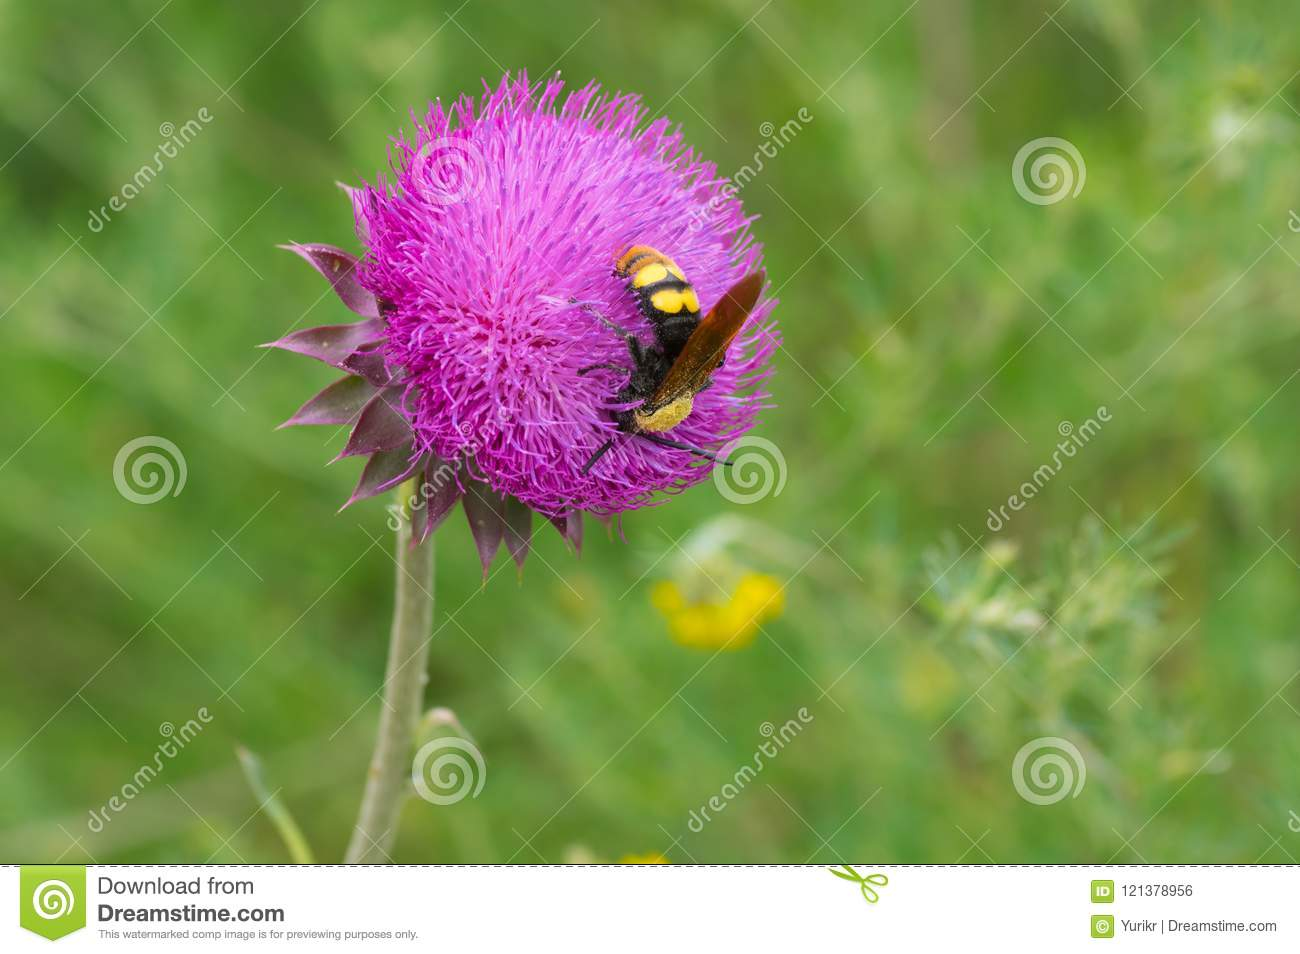 Big wasp sucking nectar on a thistle flower